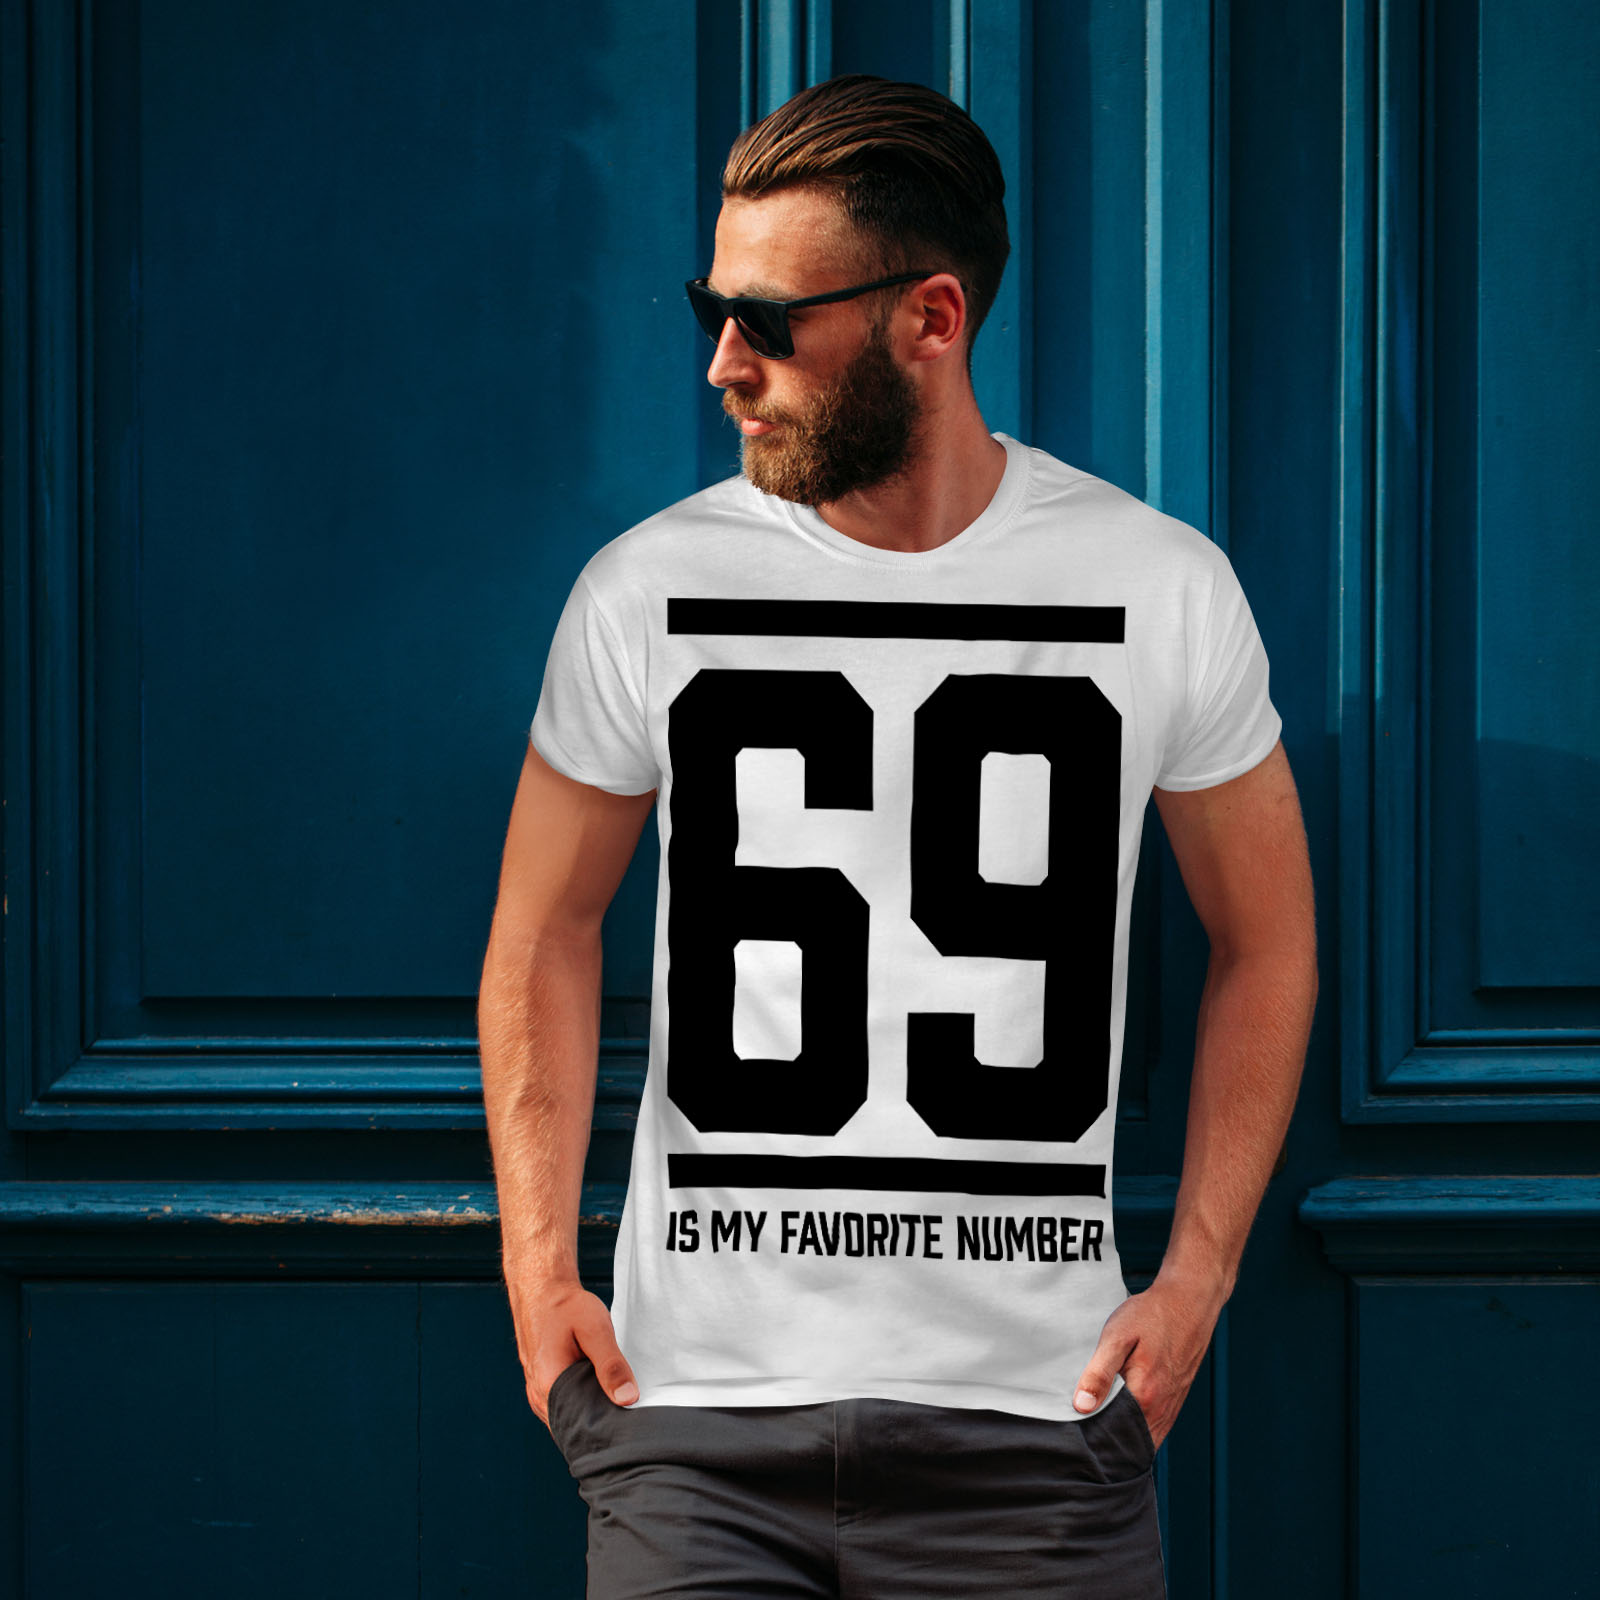 Wellcoda-69-Favorite-Number-Mens-T-shirt-Sports-Graphic-Design-Printed-Tee thumbnail 10